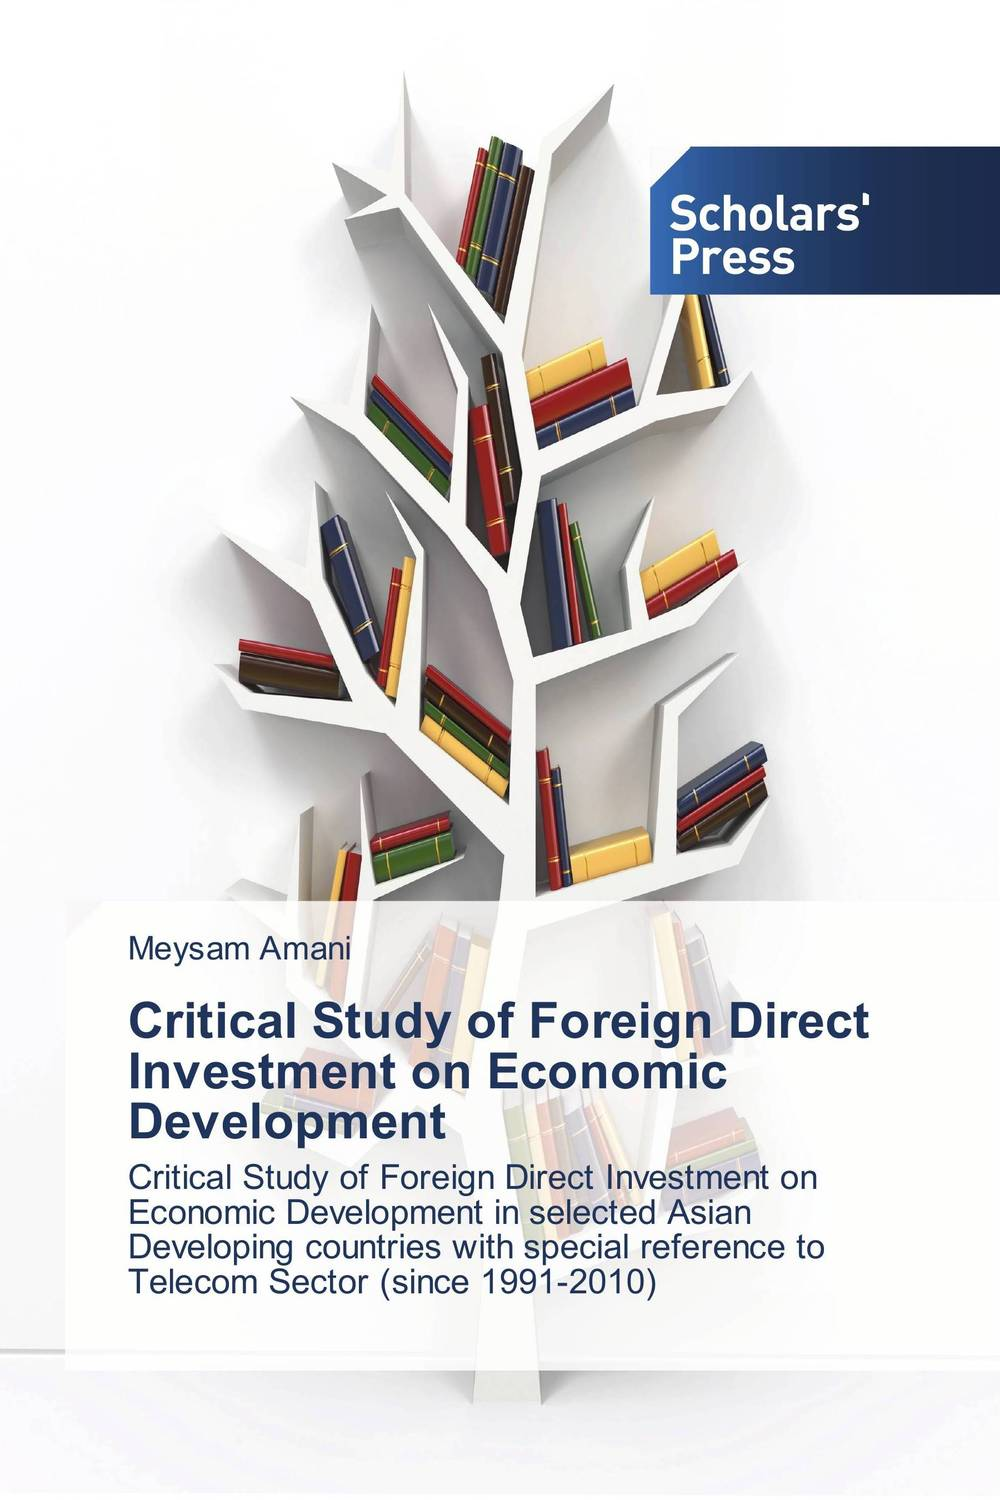 Critical Study of Foreign Direct Investment on Economic Development social sector and economic development in india since 1991